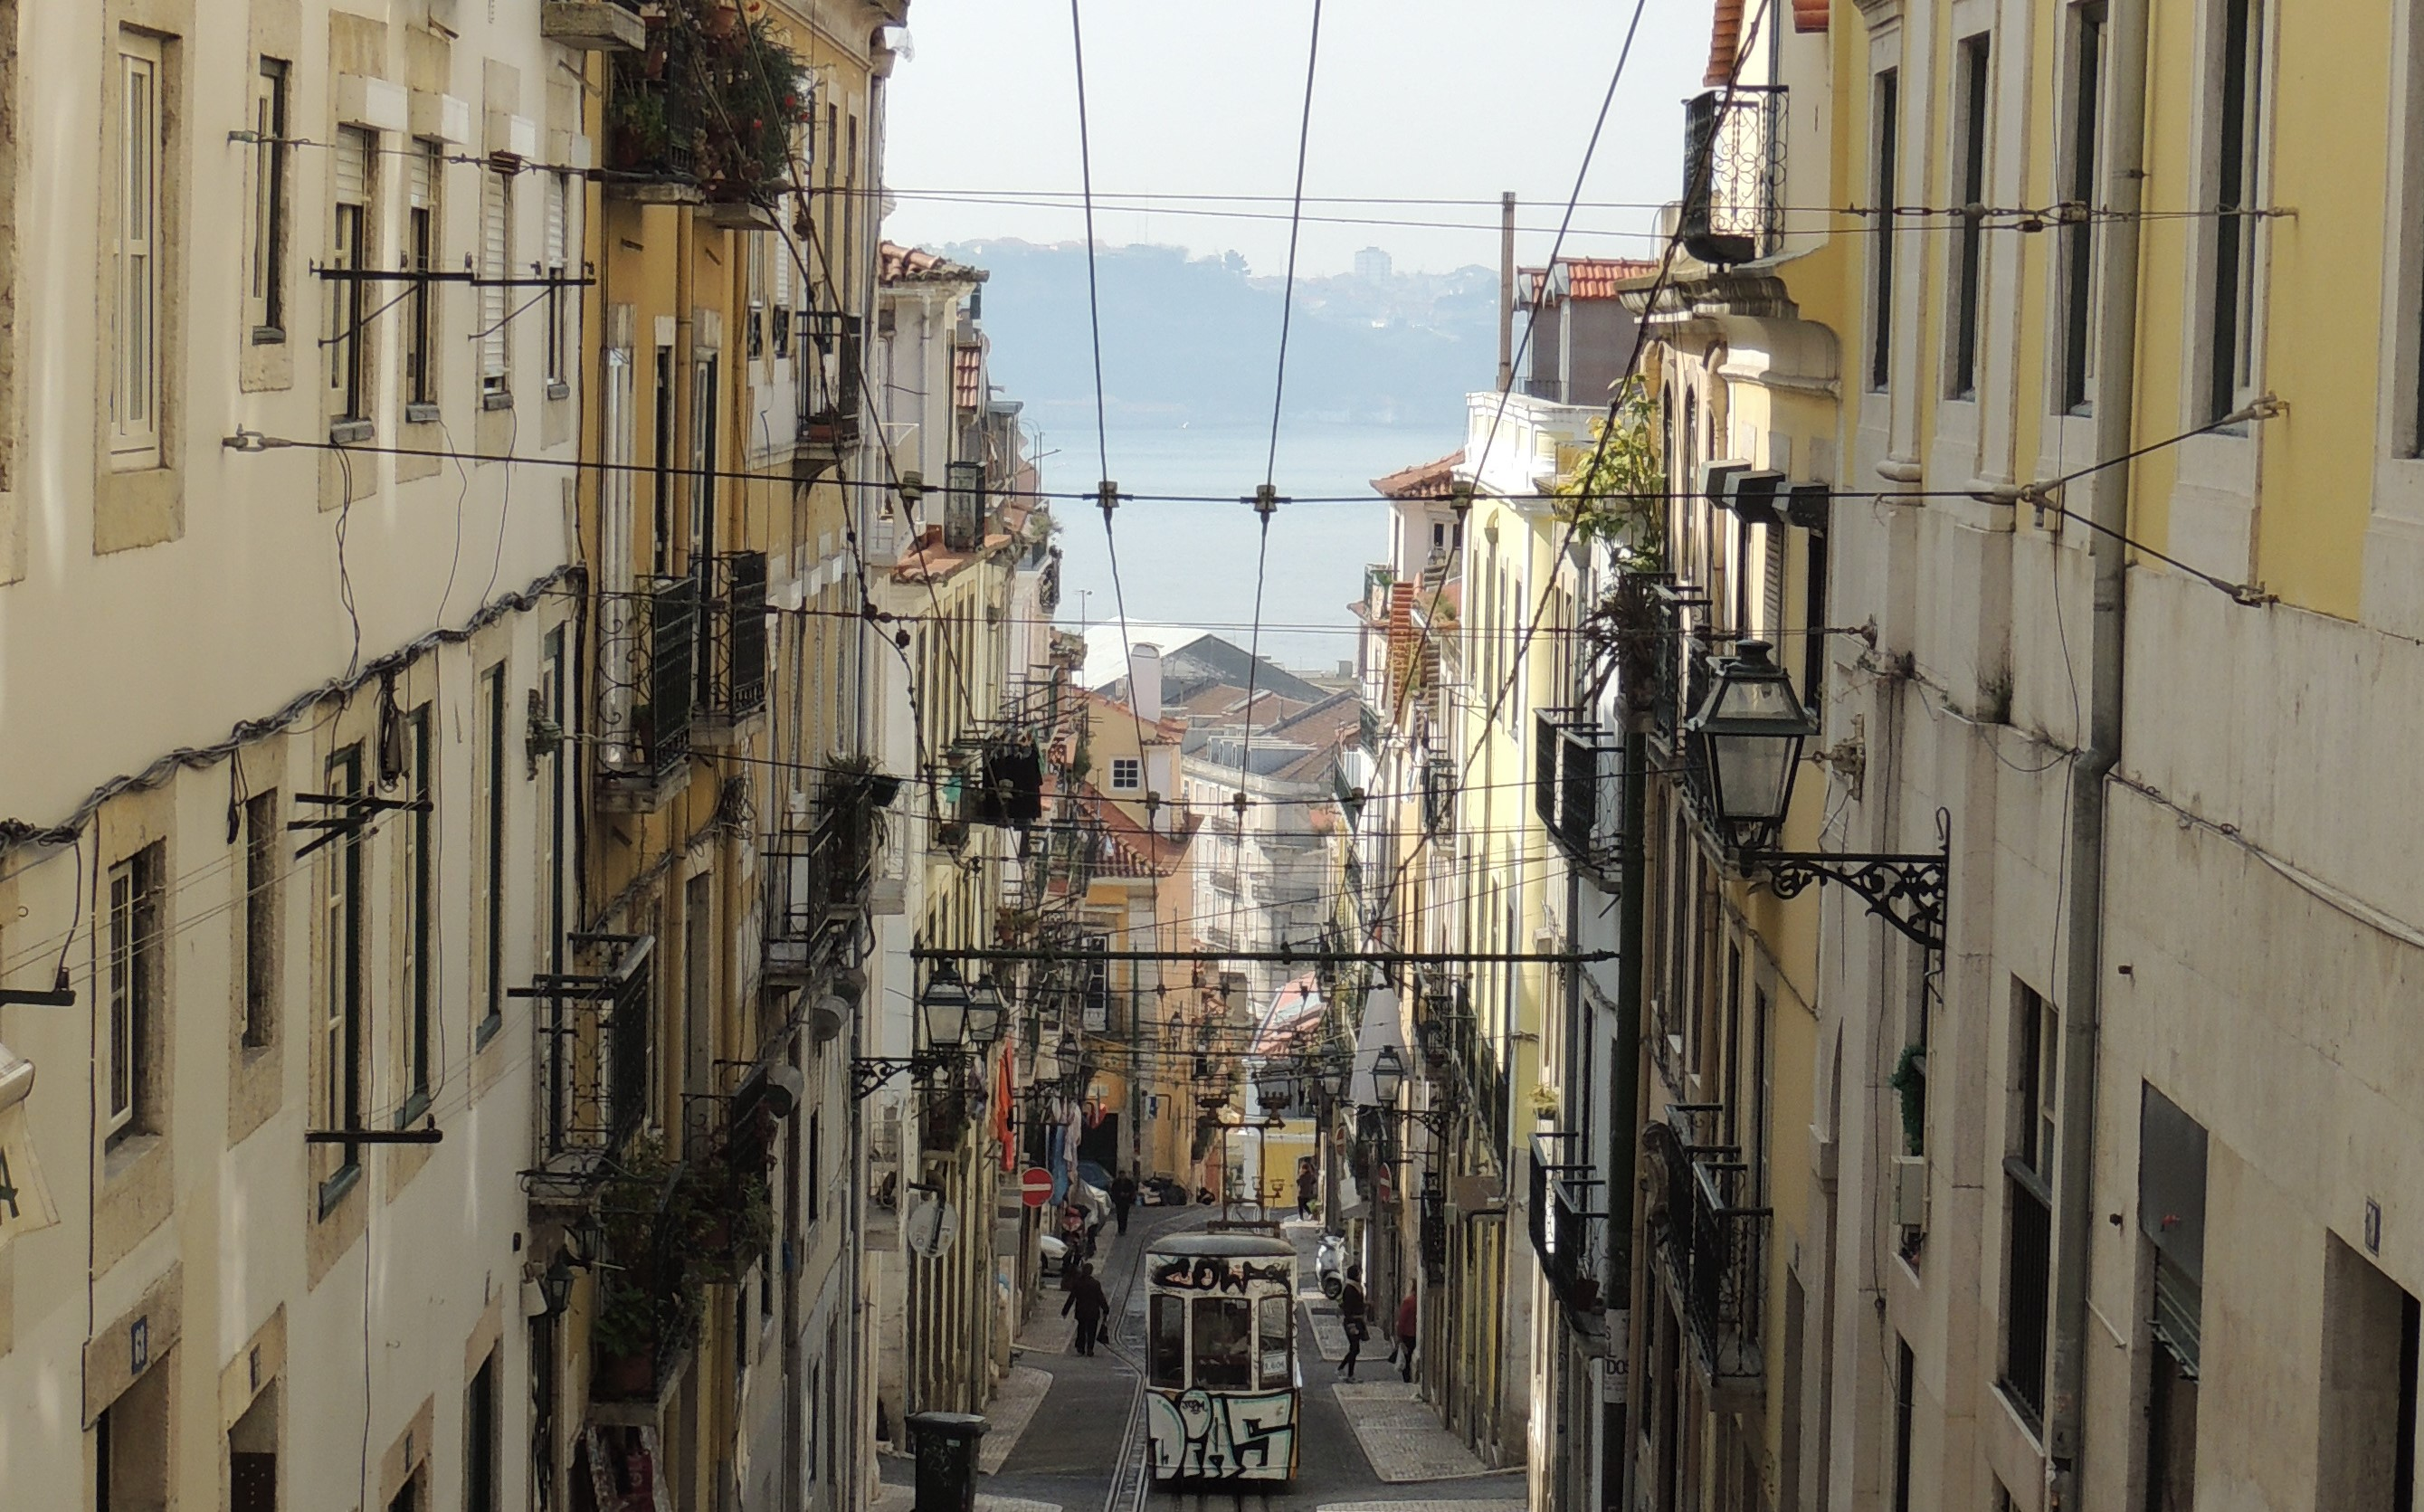 Everyone has heard of the no28 tram but what about Lisboa's funiculars